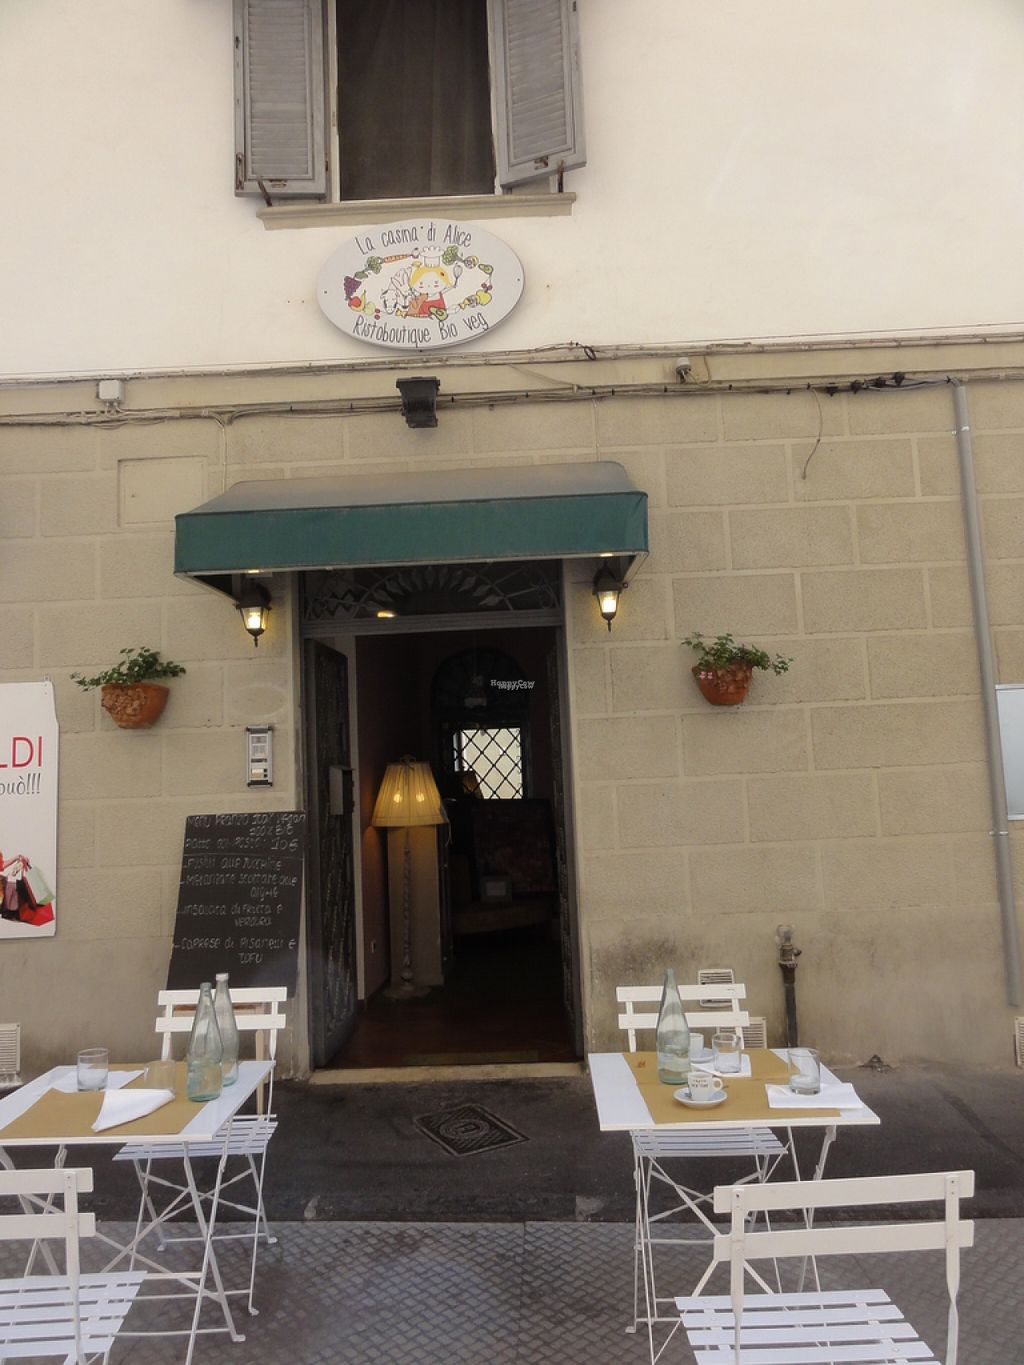 """Photo of La Casina di Alice  by <a href=""""/members/profile/geekpeitsche"""">geekpeitsche</a> <br/>store front <br/> August 18, 2016  - <a href='/contact/abuse/image/42747/169859'>Report</a>"""